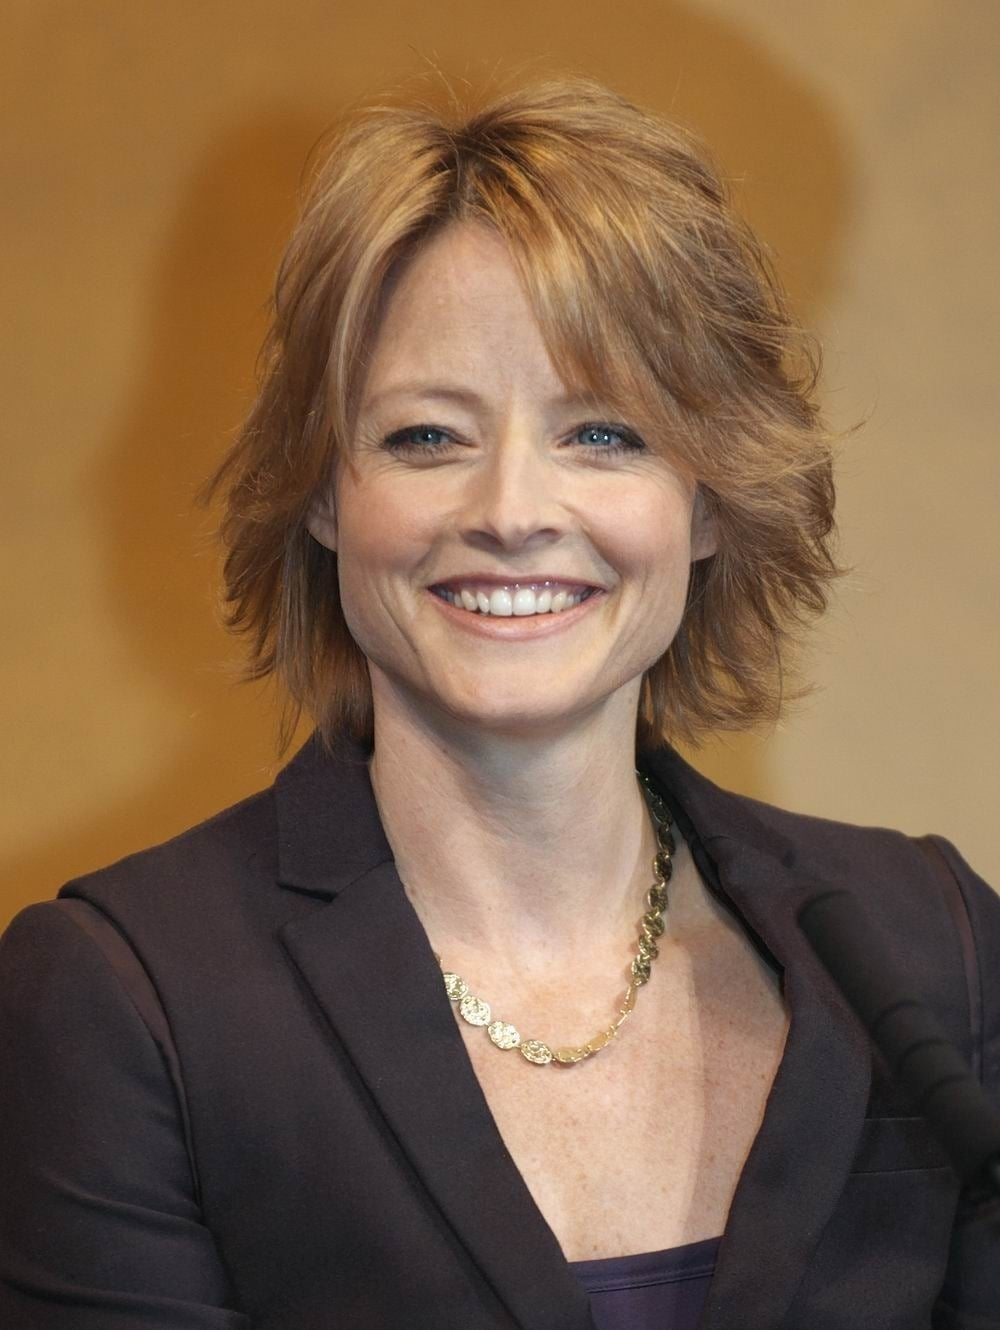 Guardare Jodie Foster Film Streaming Completo - Film en Streaming